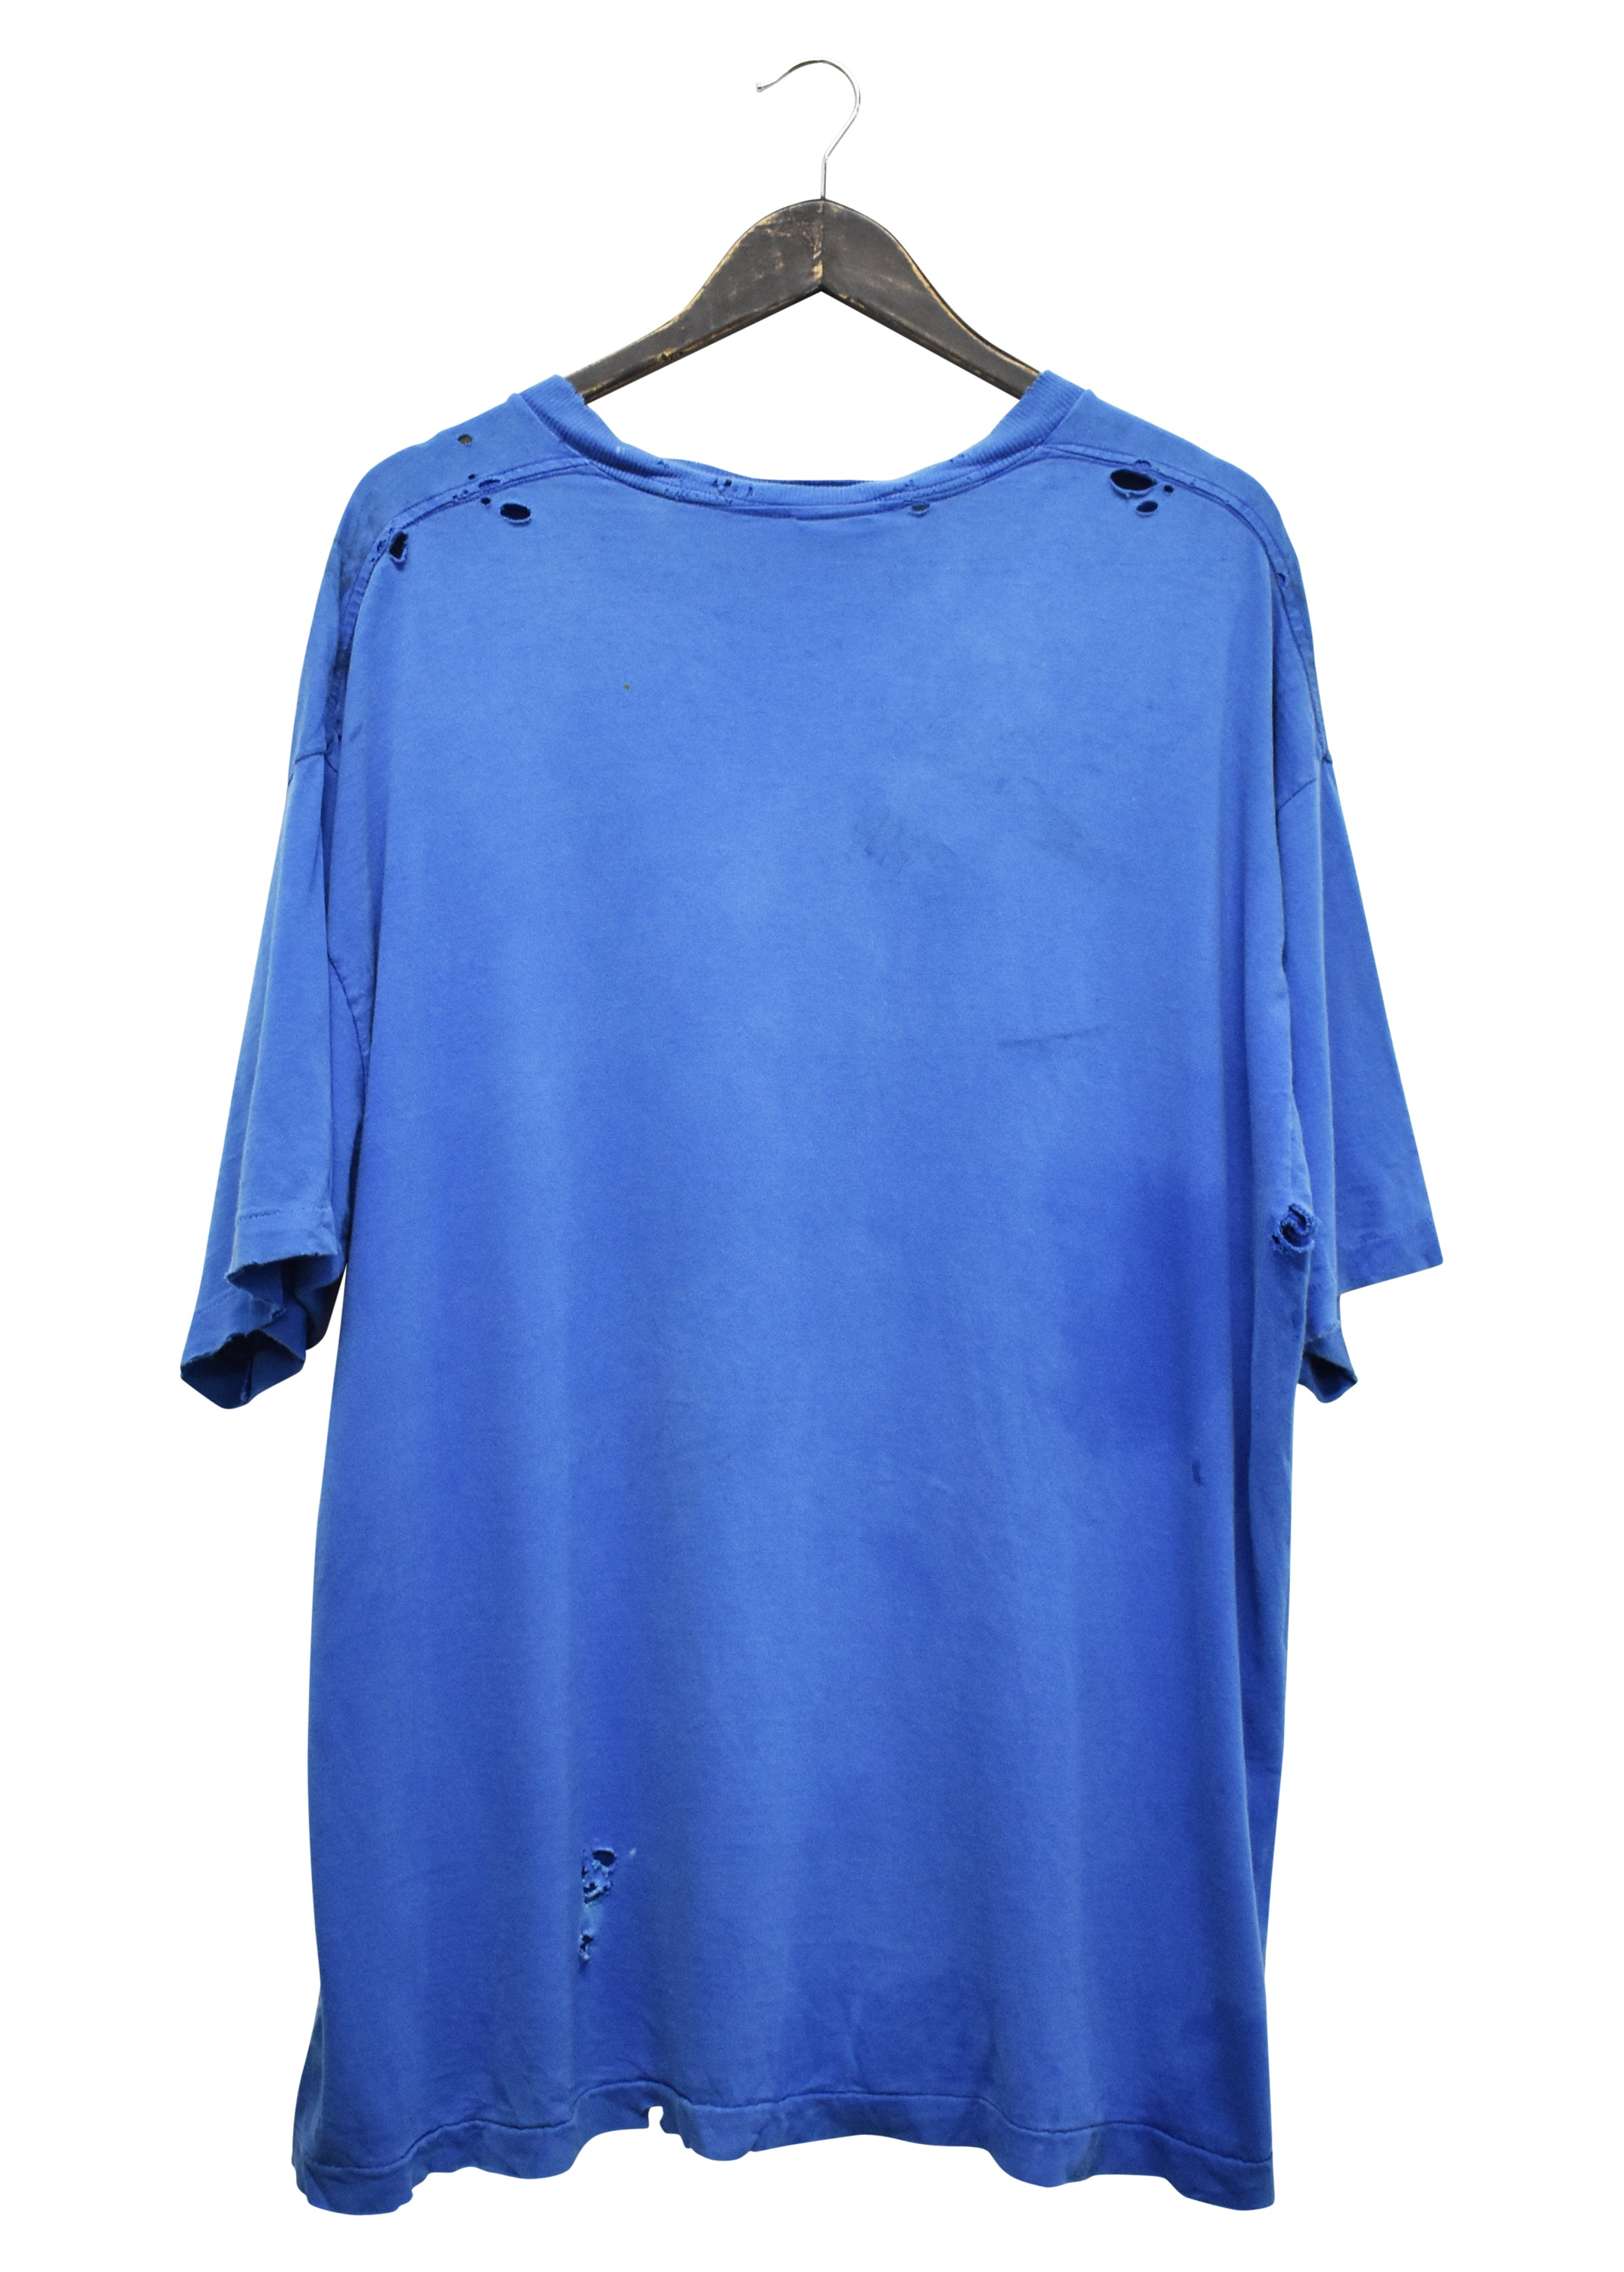 GUNS 'N' ROSES 'APPETITE FOR DESTRUCTION' COLLECTOR TEE